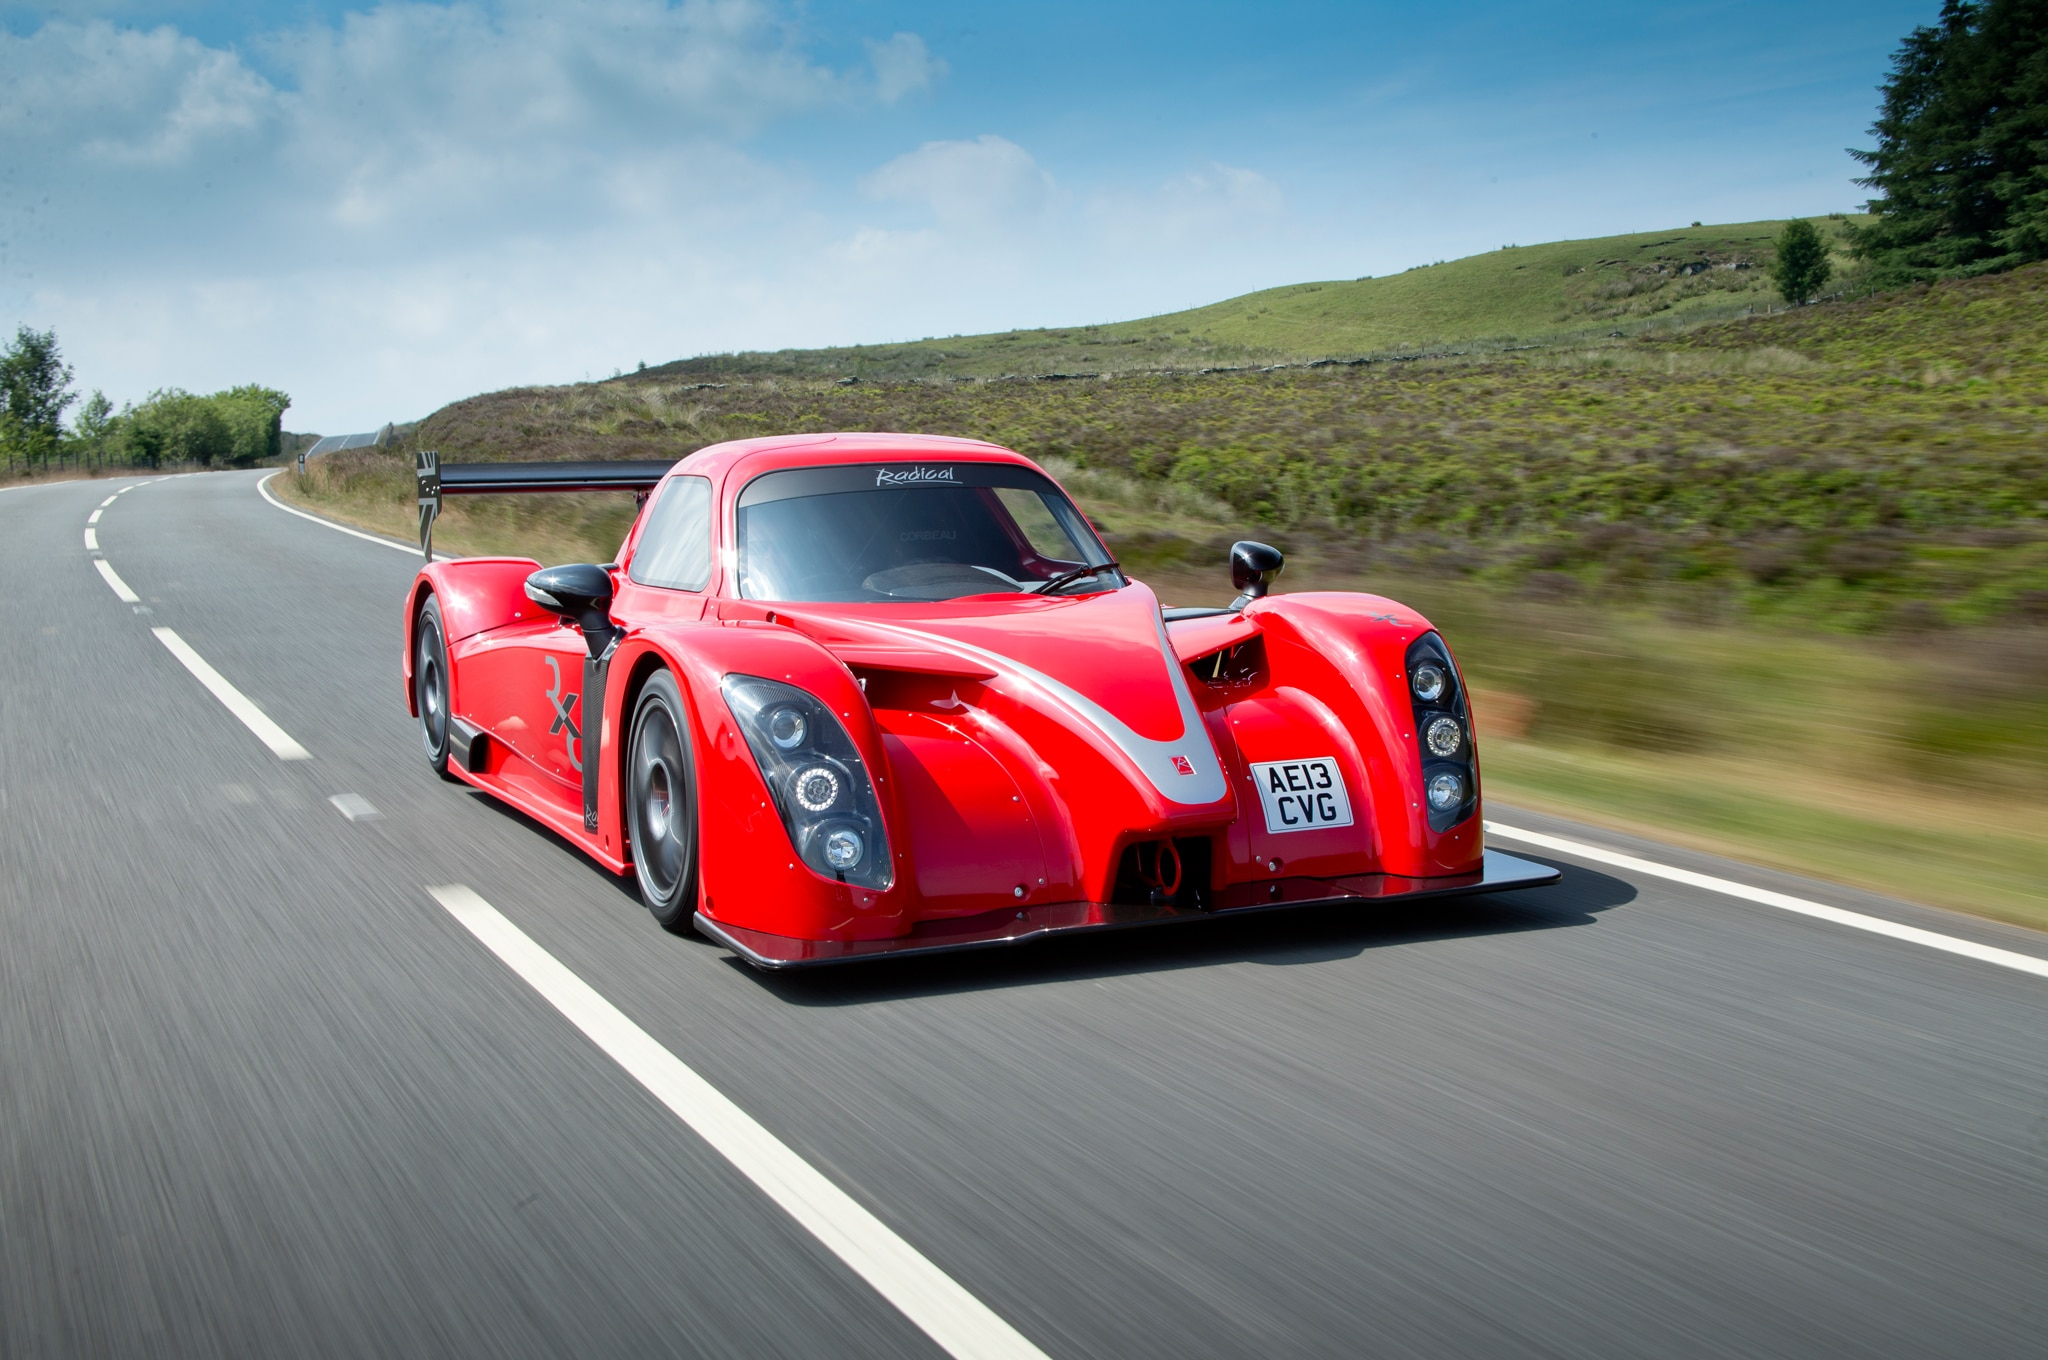 2015 Radical RXC Front Three Quarter In Motion 03